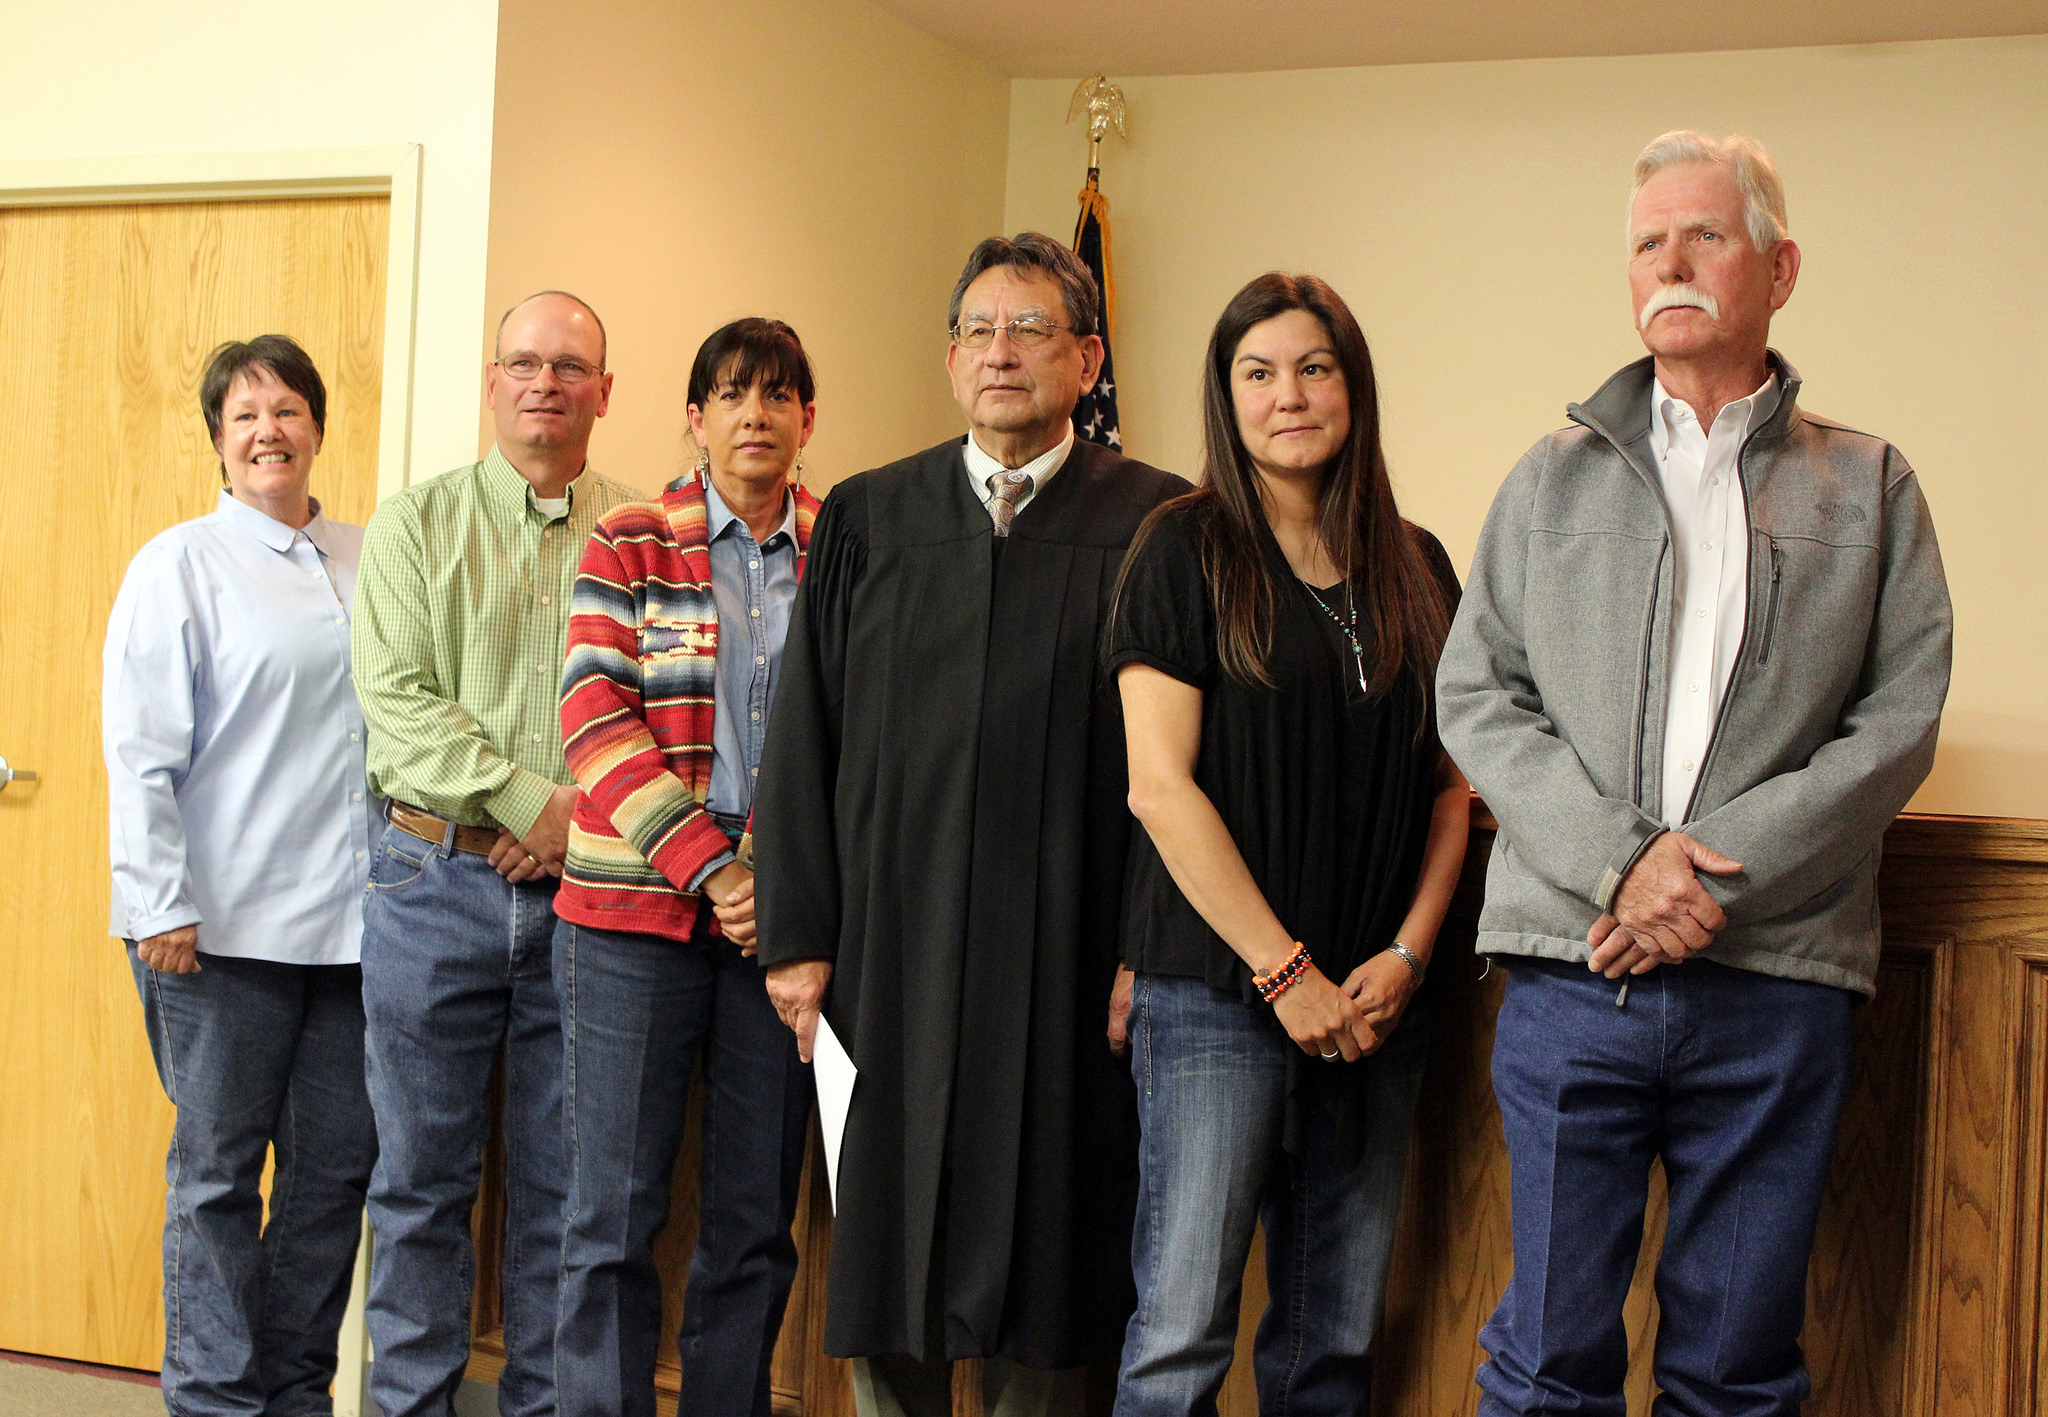 Bluestem Ranch LLC board meets for first time, elects chair